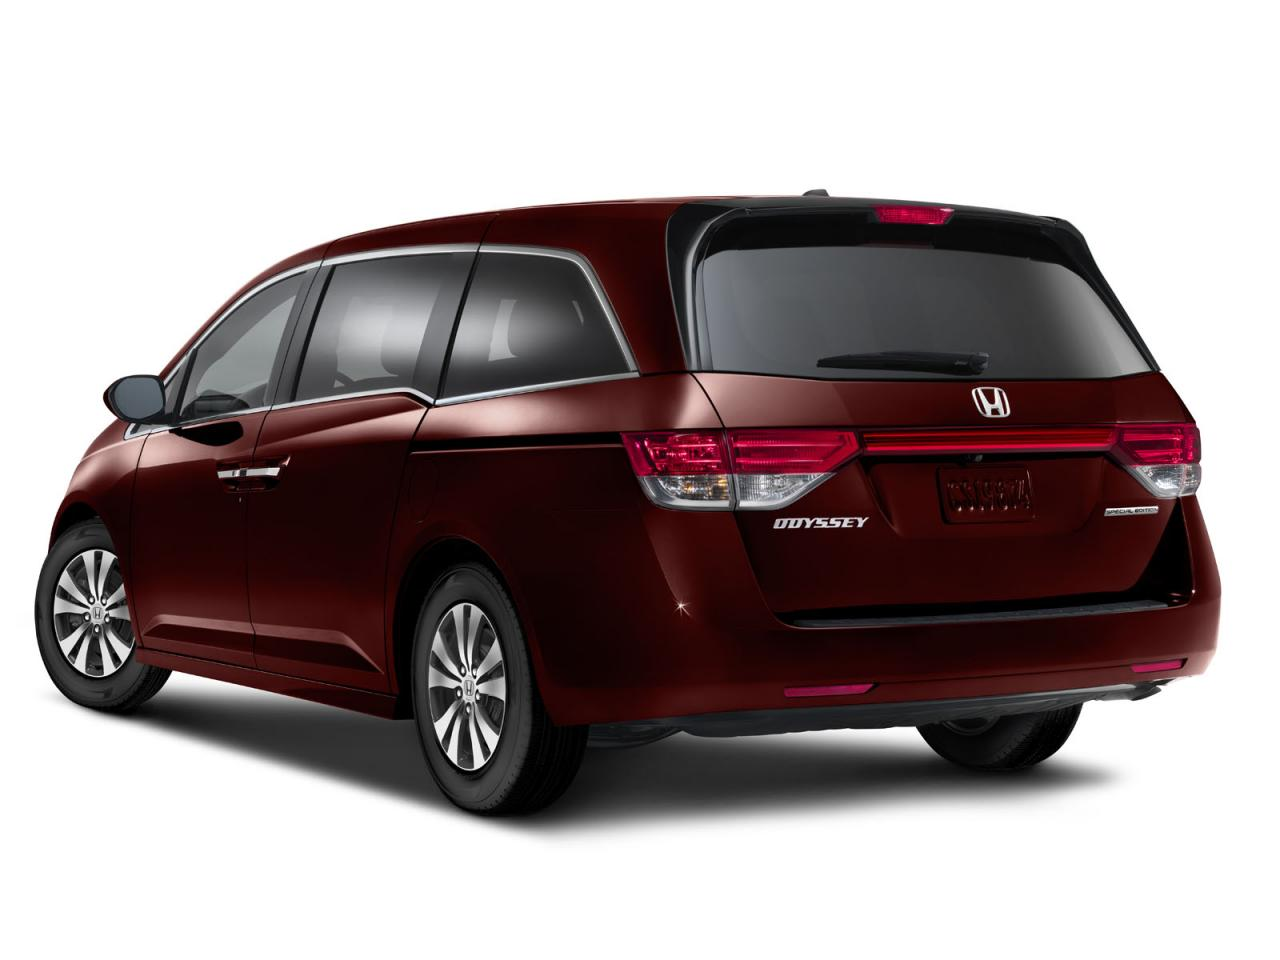 honda introduces 2016 odyssey special edition in united states speed carz. Black Bedroom Furniture Sets. Home Design Ideas